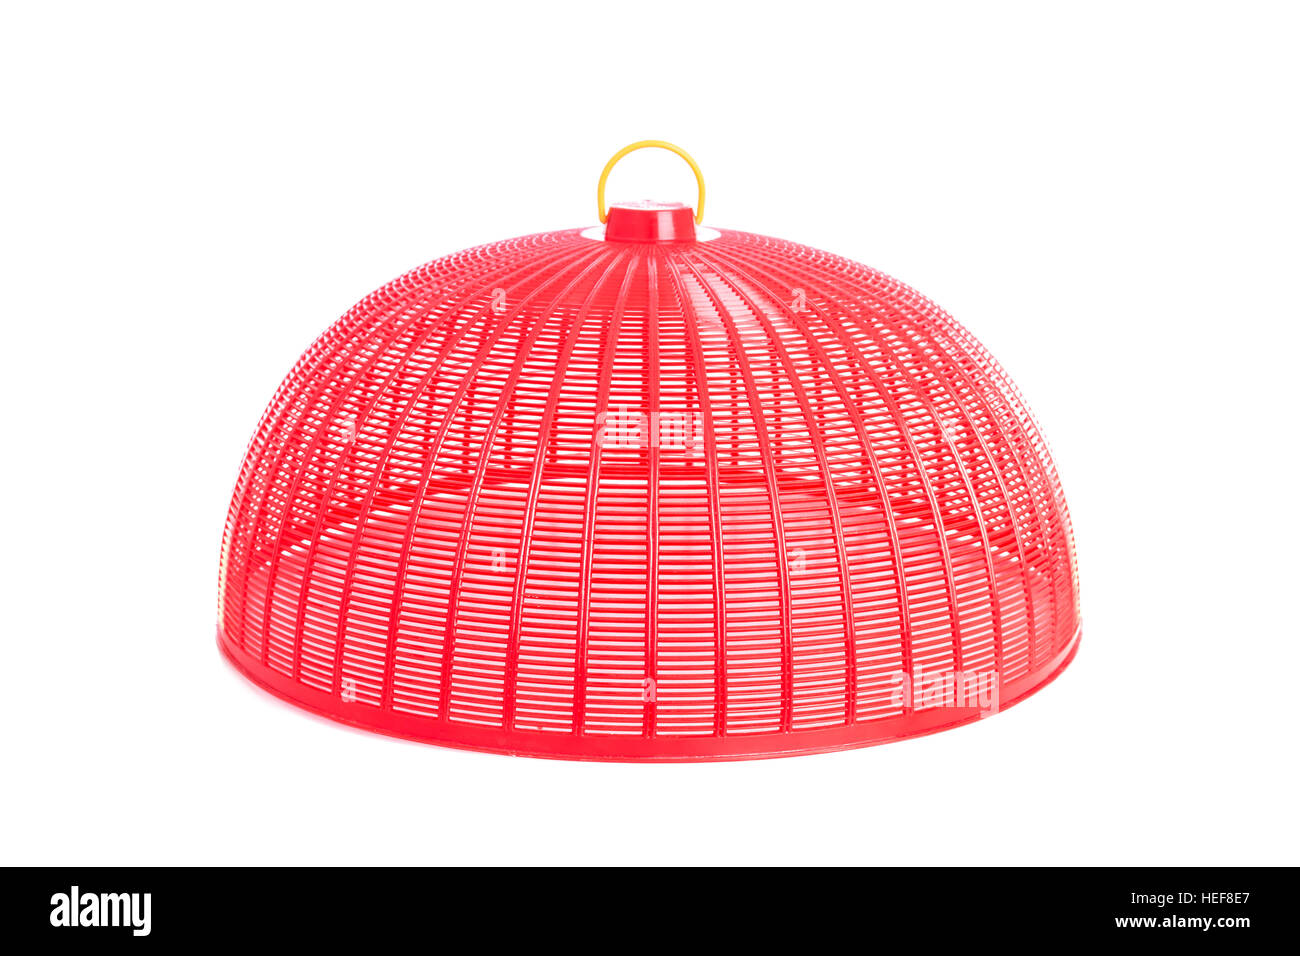 Red plastic mesh cover (used to cover food to protect from insects) isolated on white background - Stock Image